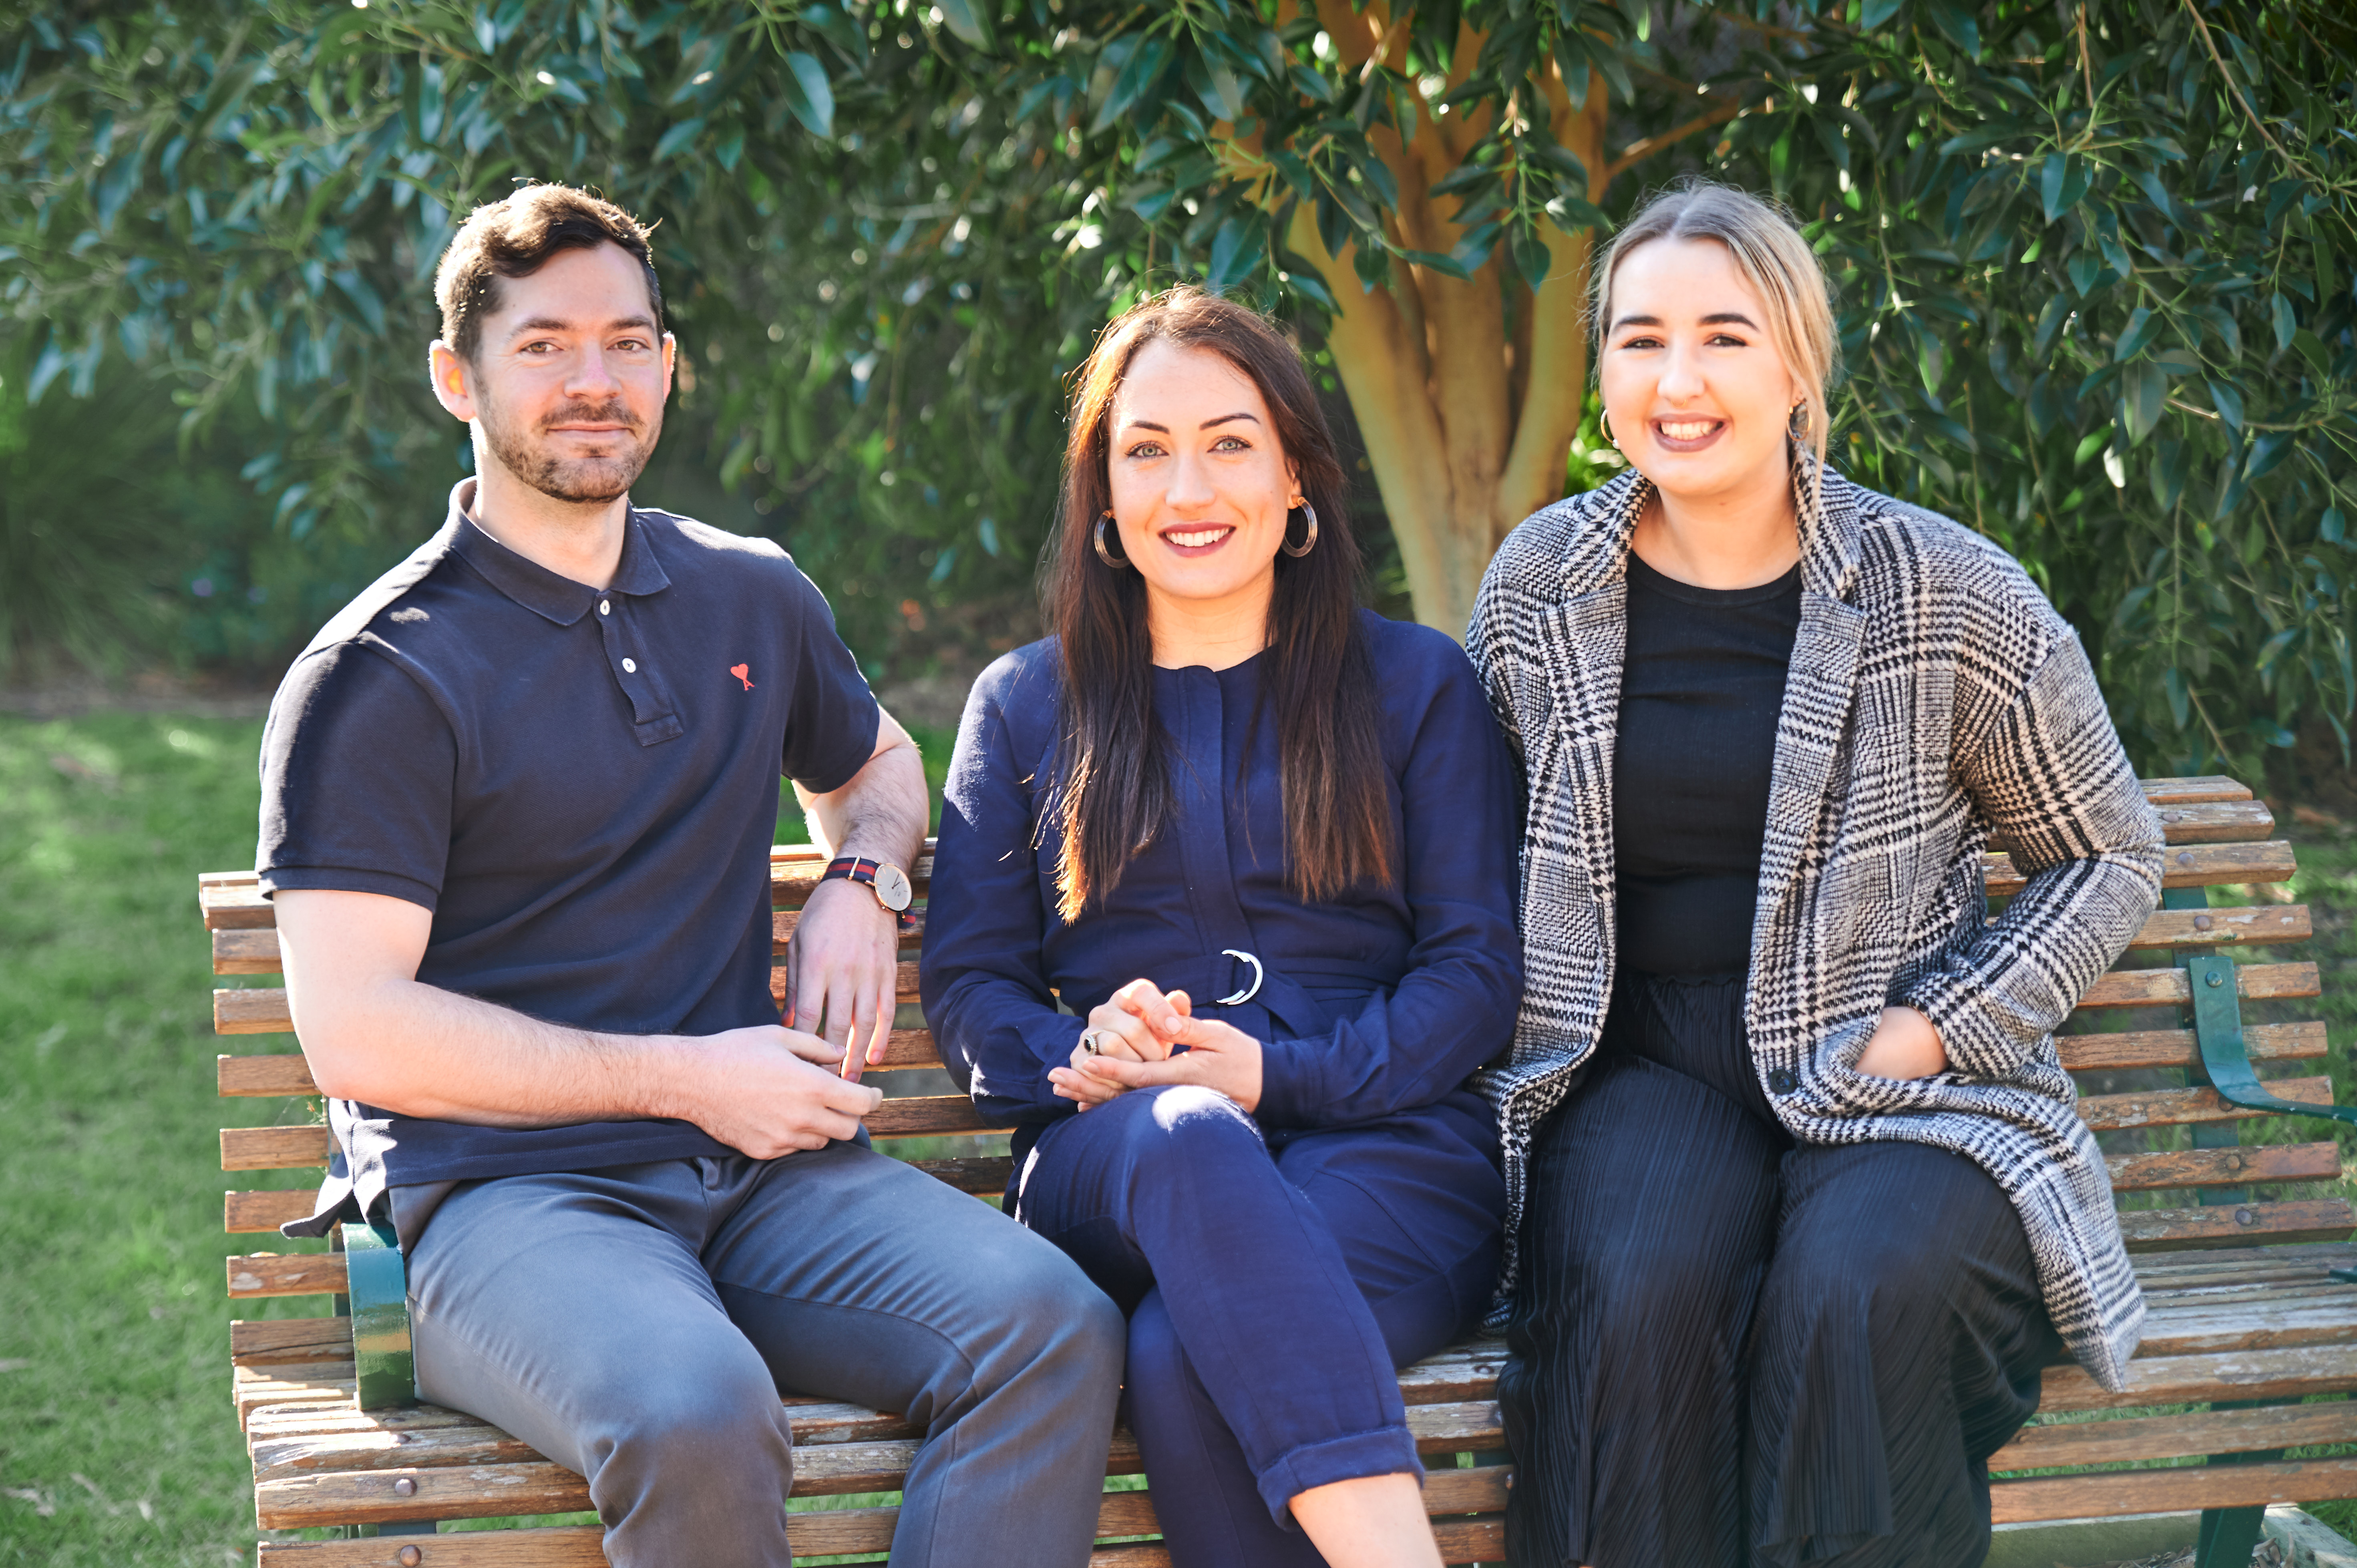 Haystac Melbourne appoints Jasmin Watts, Samuel Stevenson and Kitch Catterall